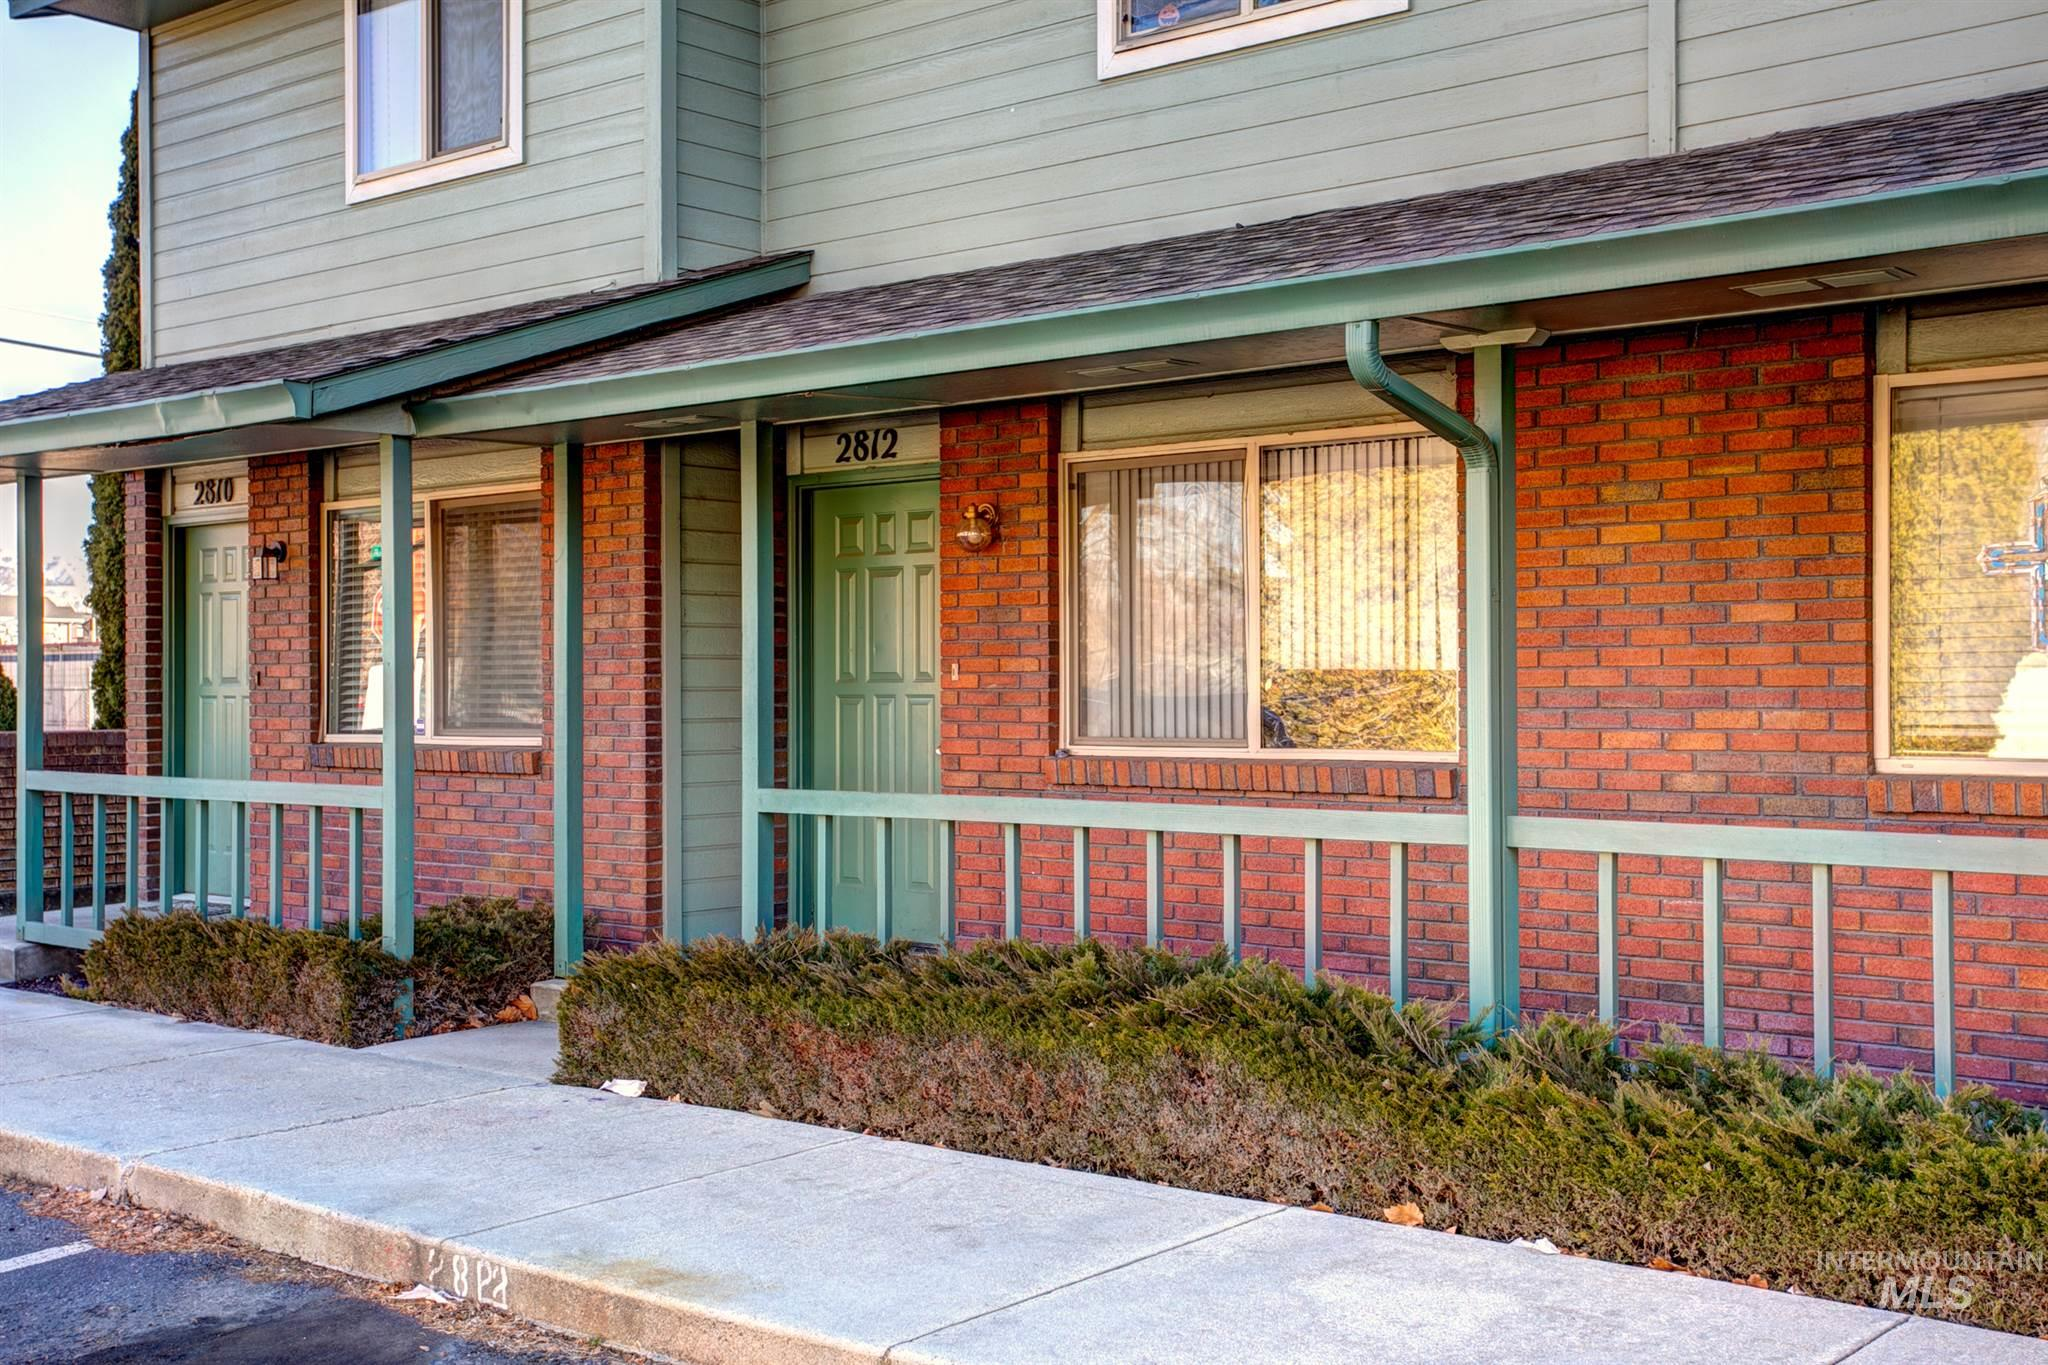 Rare opportunity to own for under $300k in Boise. Live in the highly desirable Bench neighborhood, just 5 minutes to downtown, airport, restaurants, shopping, & schools. Enjoy the simplicity of a low maintenance yard w/the convenience of Shoshone Park across the street. Take advantage of this unique opportunity for owner carry financing w/4.75% interest rate. Currently rented month to month at $1,225. Turn key investment or future owner occupant home.